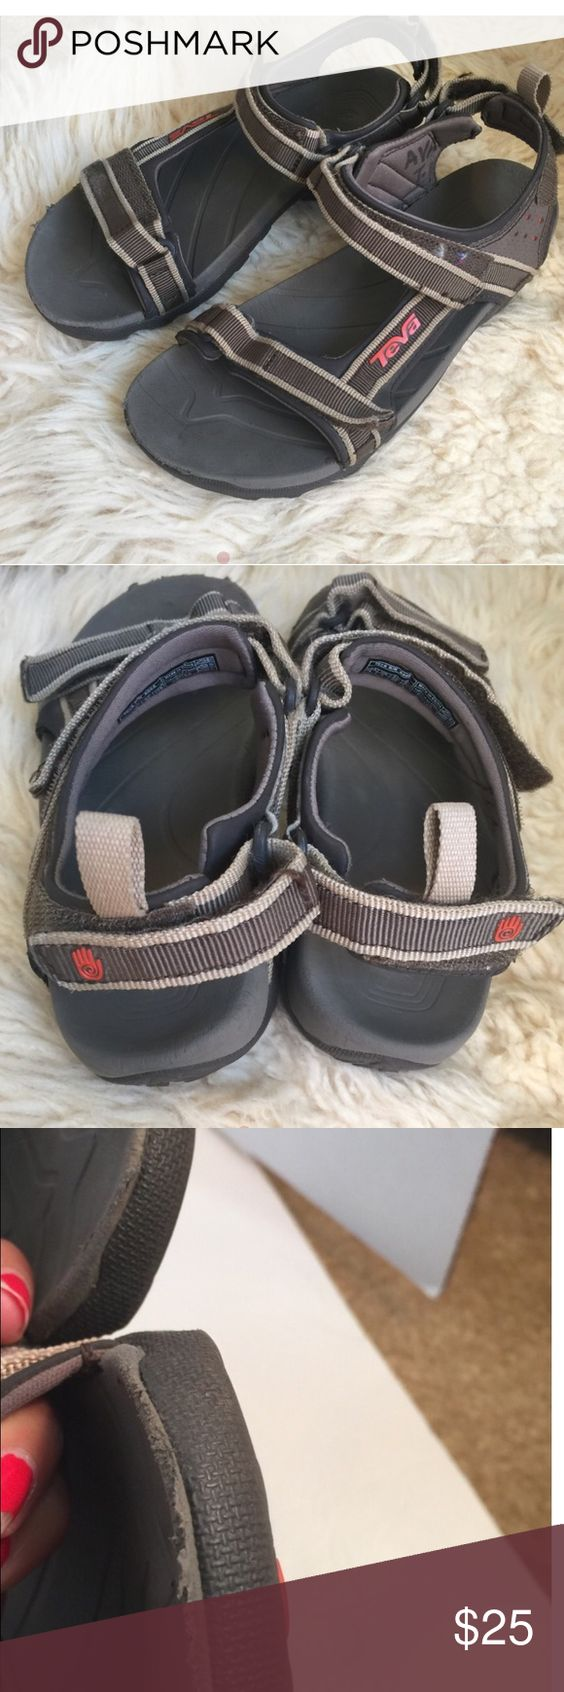 Teva Kids Sandal an 6095 size 4 Teva Kids Sandal an 6095 size 4 excellent condition with the exception of the FRONT see photo little peel. Expensive quality sandals at a fraction of the price. Teva Shoes Sandals & Flip Flops